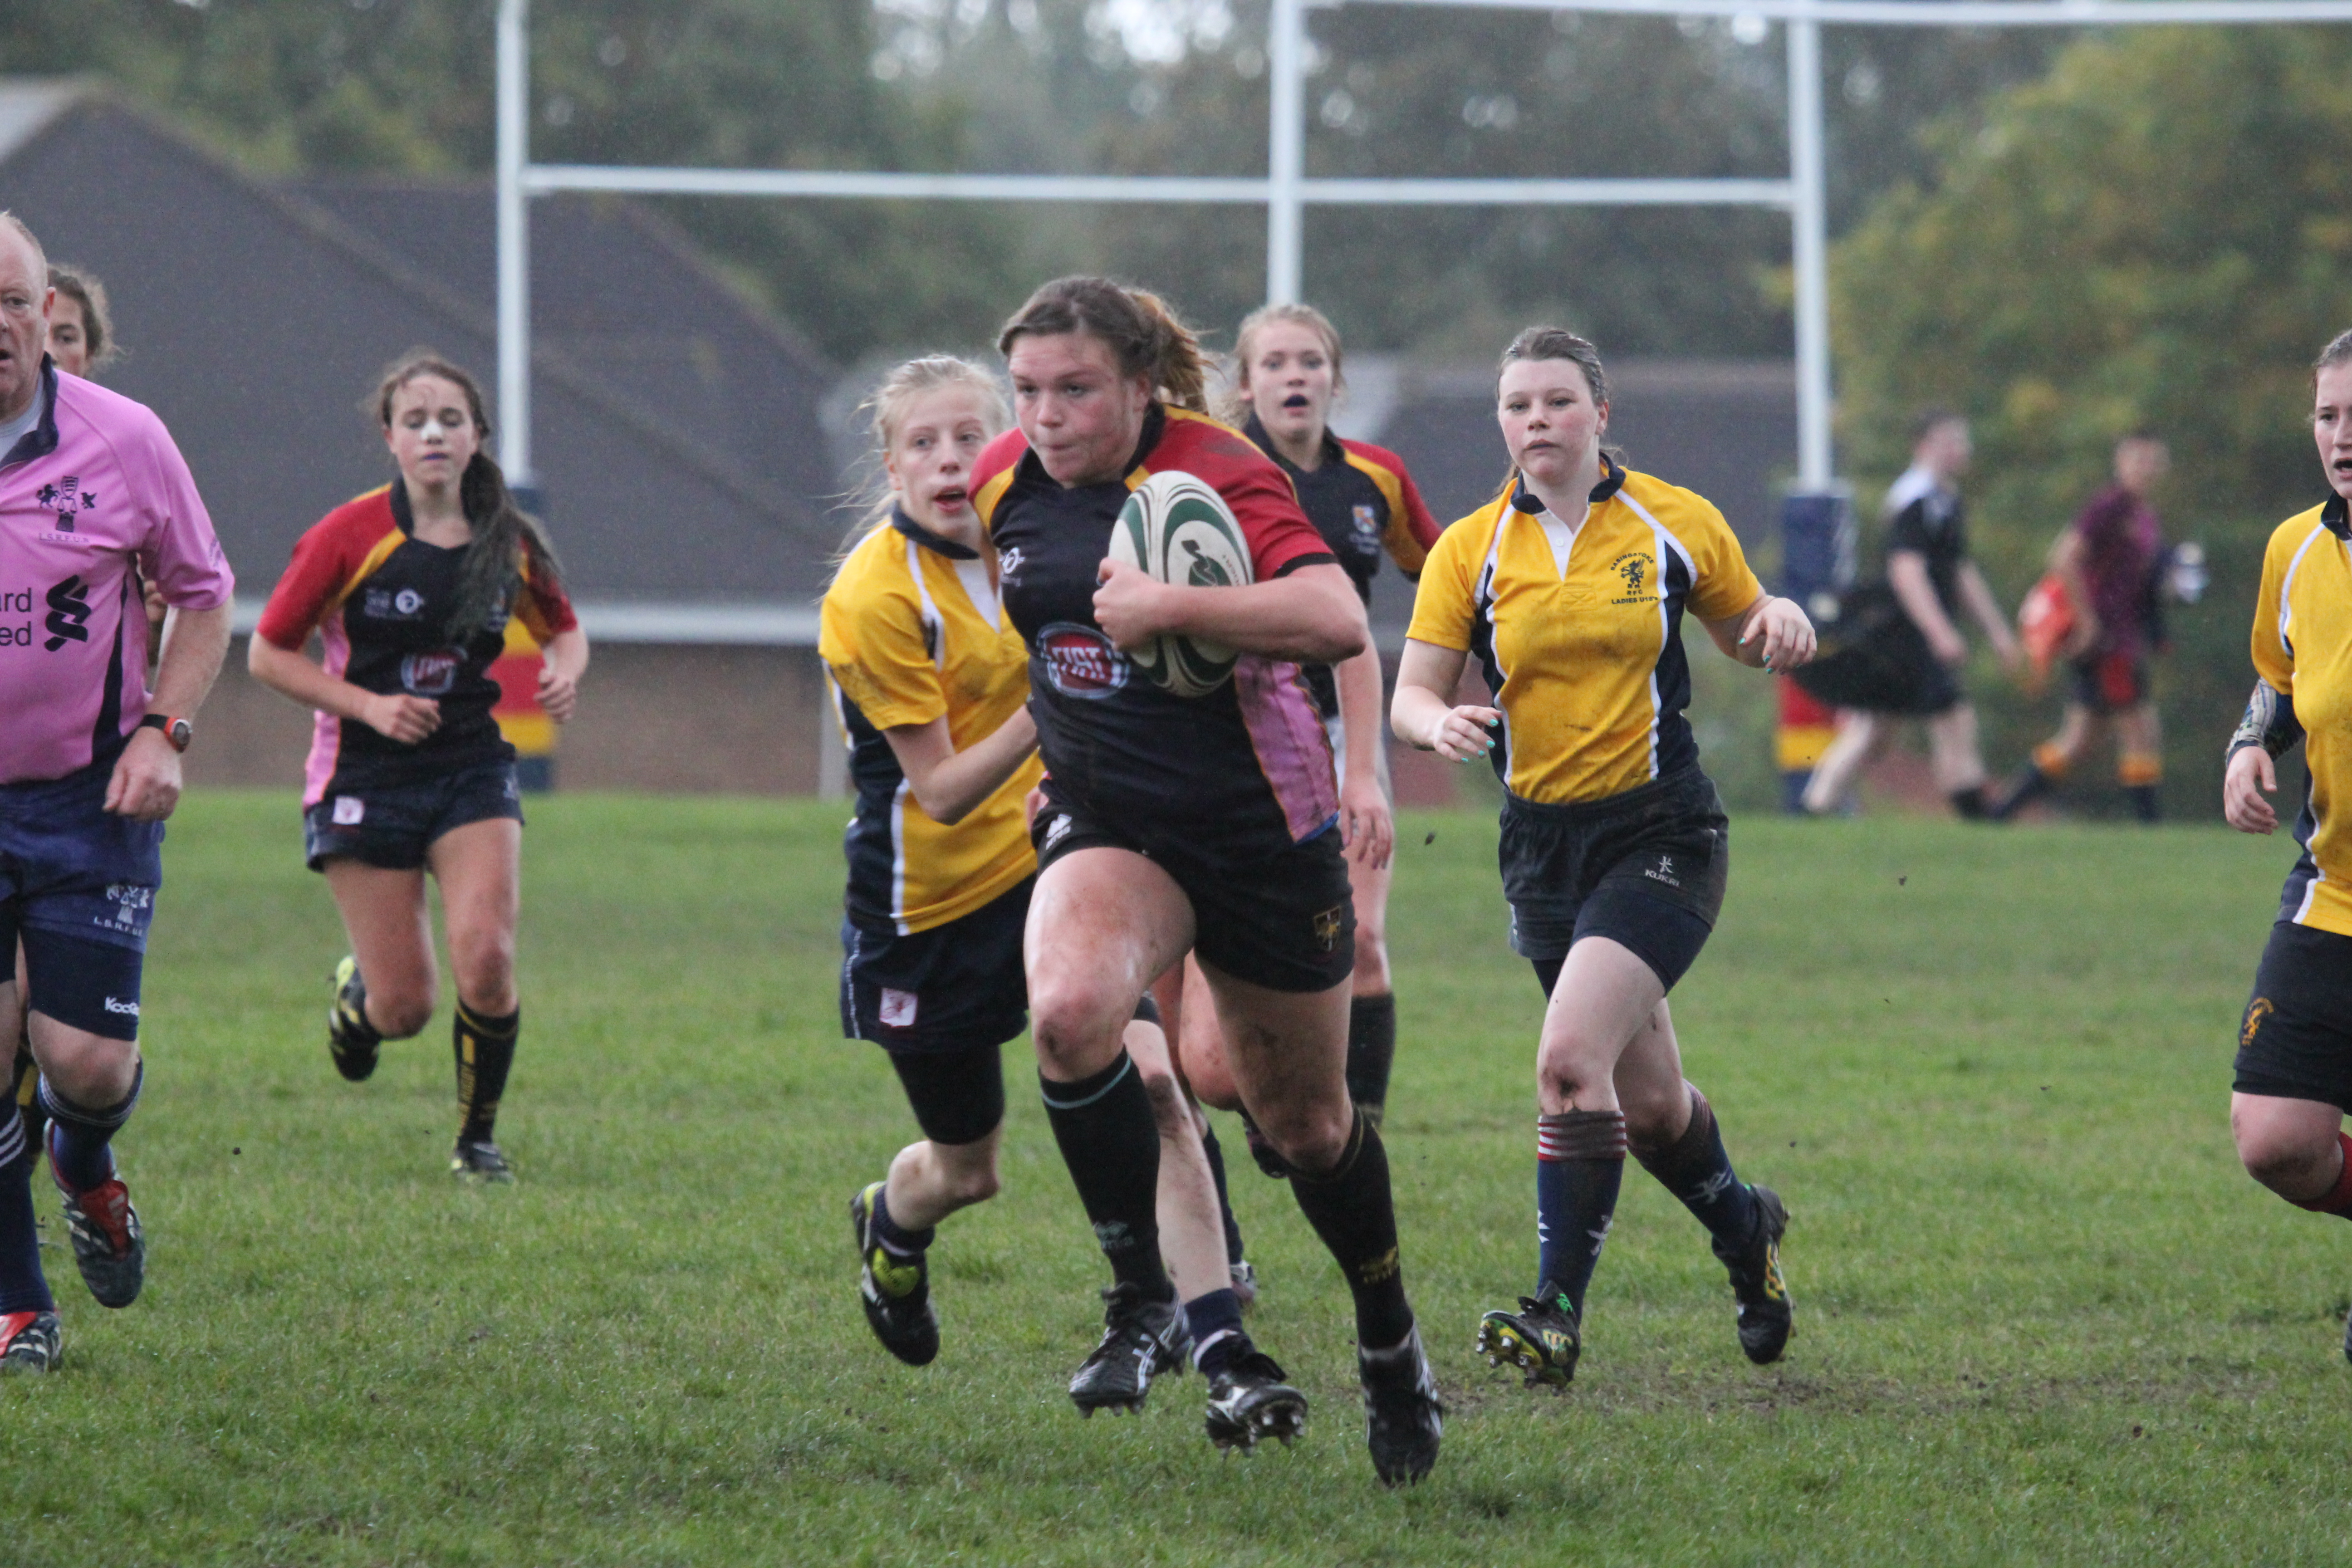 Rugby girls images 27